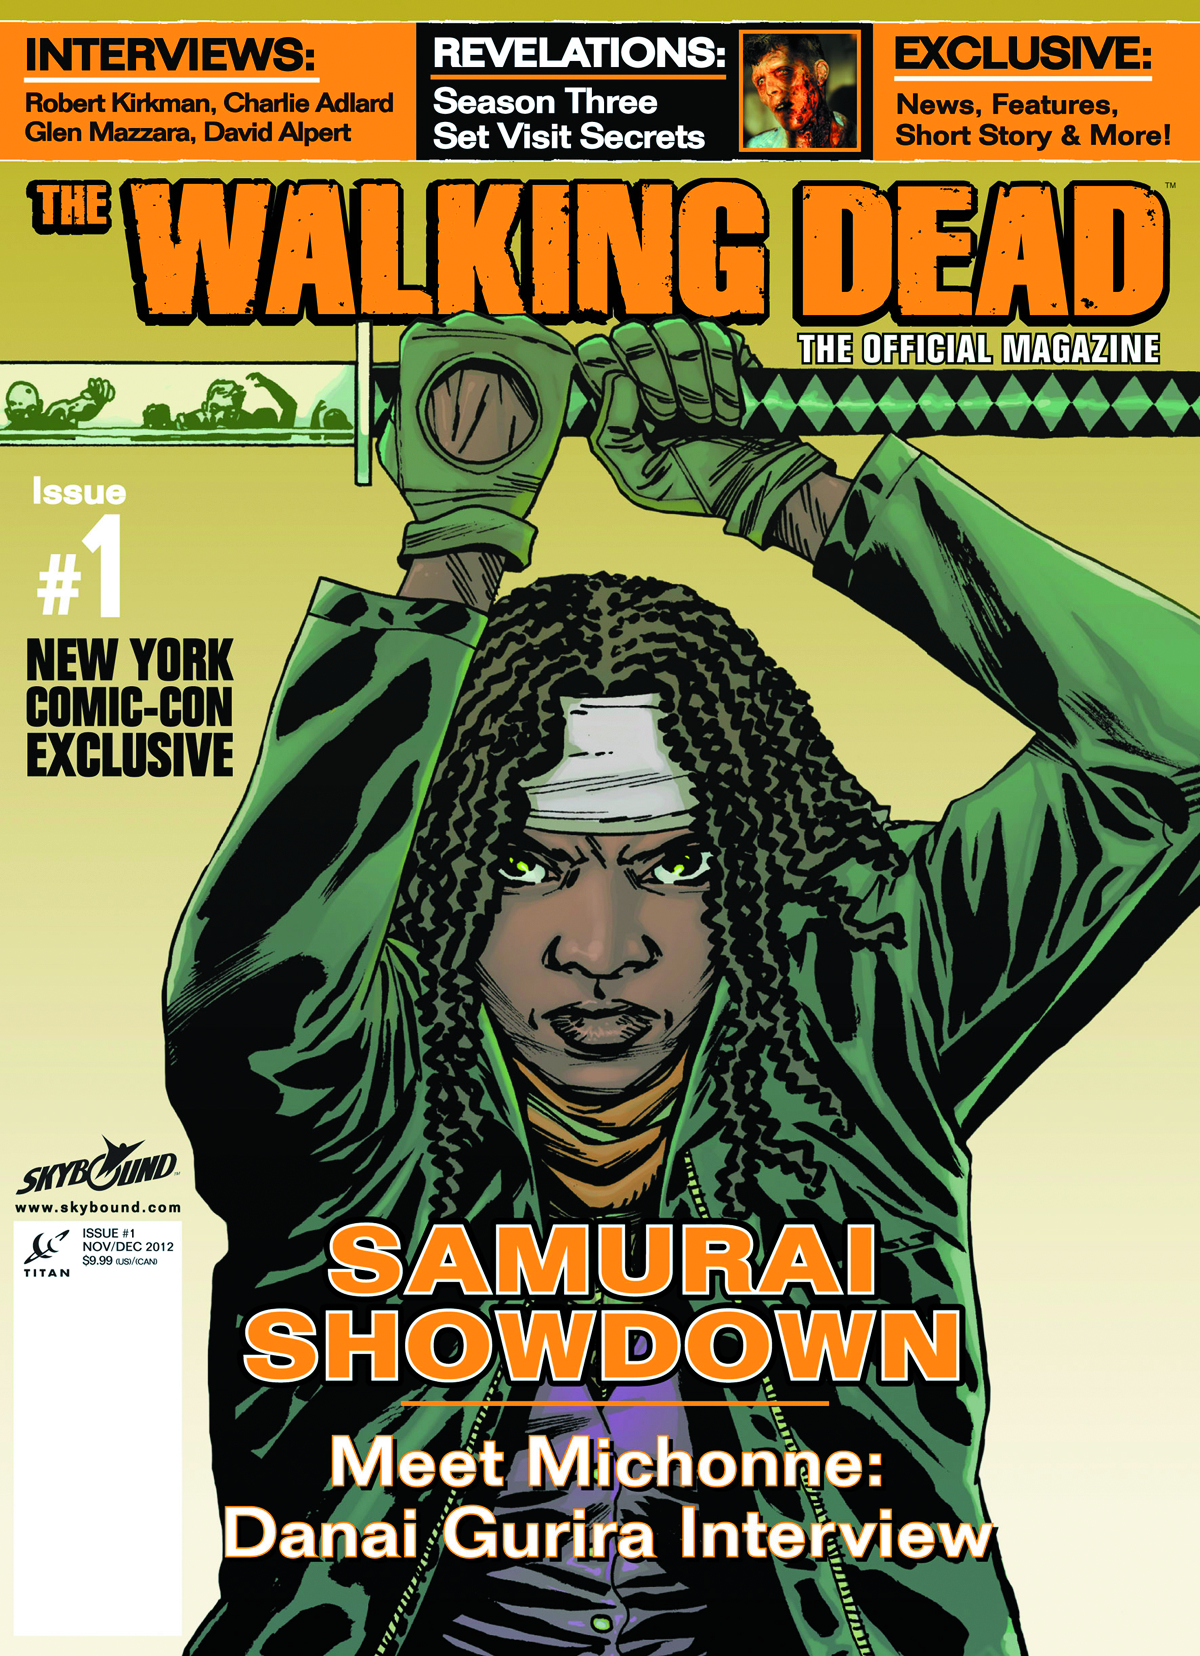 WALKING DEAD MAGAZINE #1 NYCC EXCLUSIVE COVER